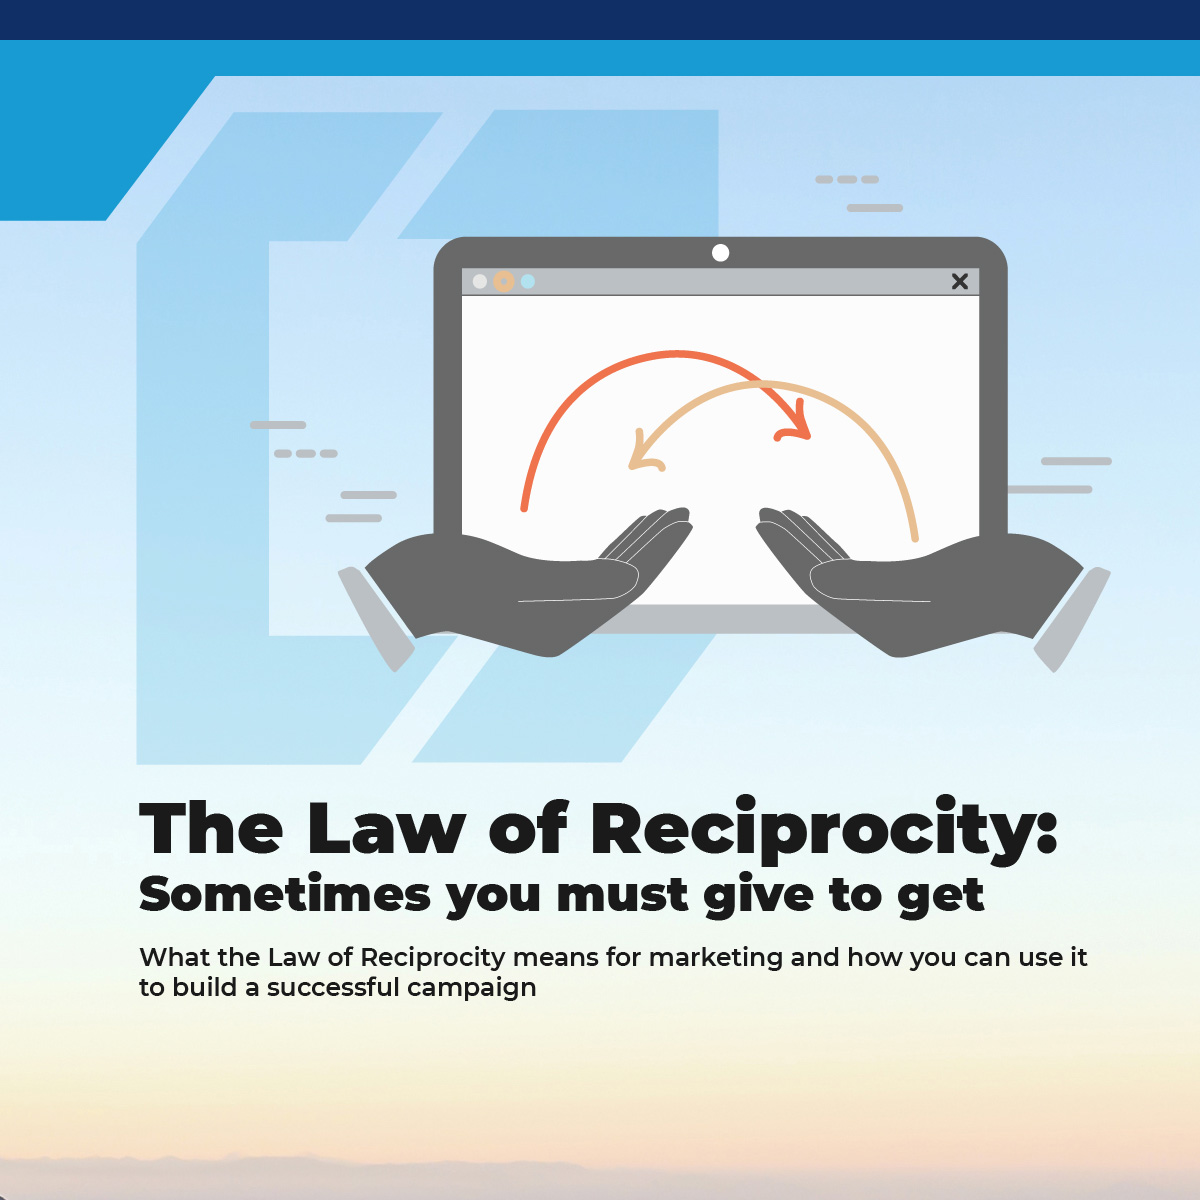 The Law of Reciprocity: Sometimes You Must Give to Get